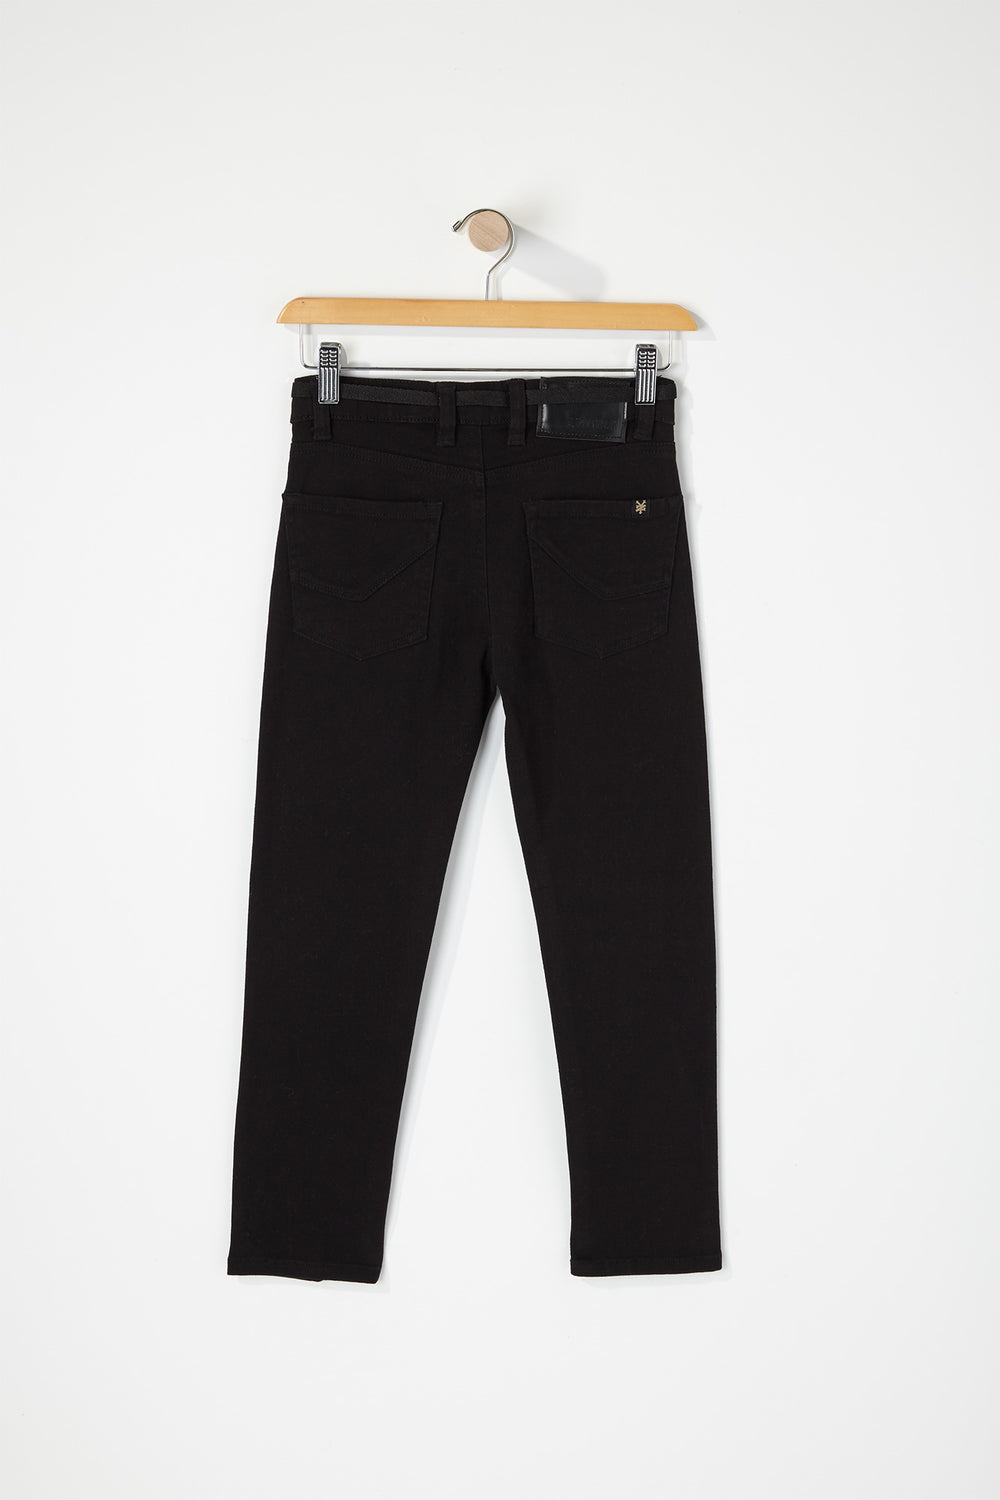 Zoo York Boys Stretch Skinny Jeans Black